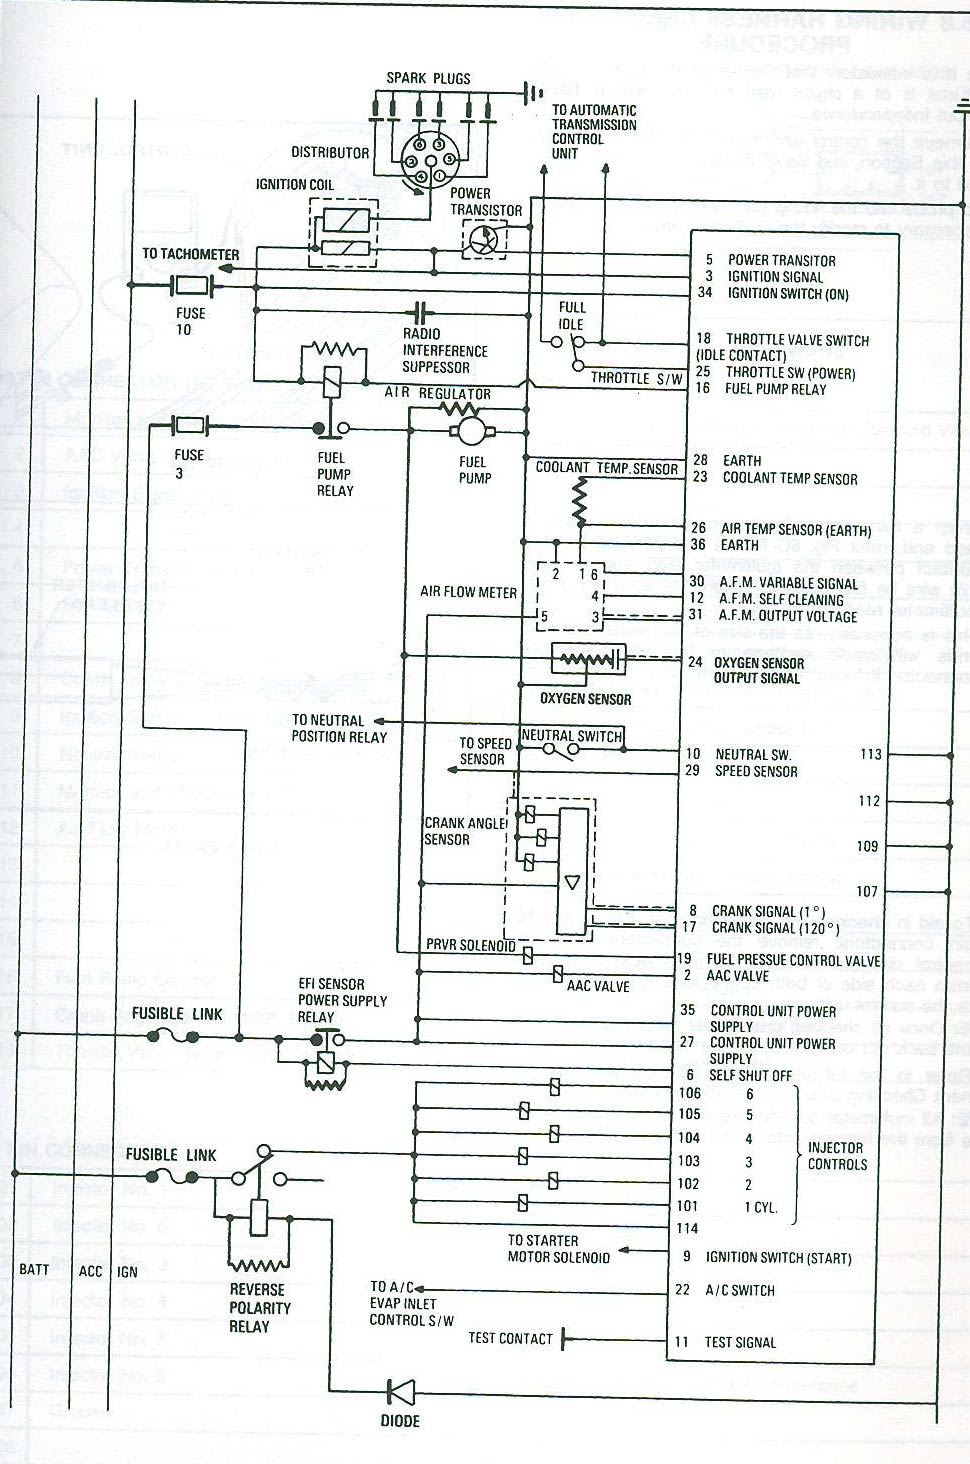 ecu pinouts and wiring diagram